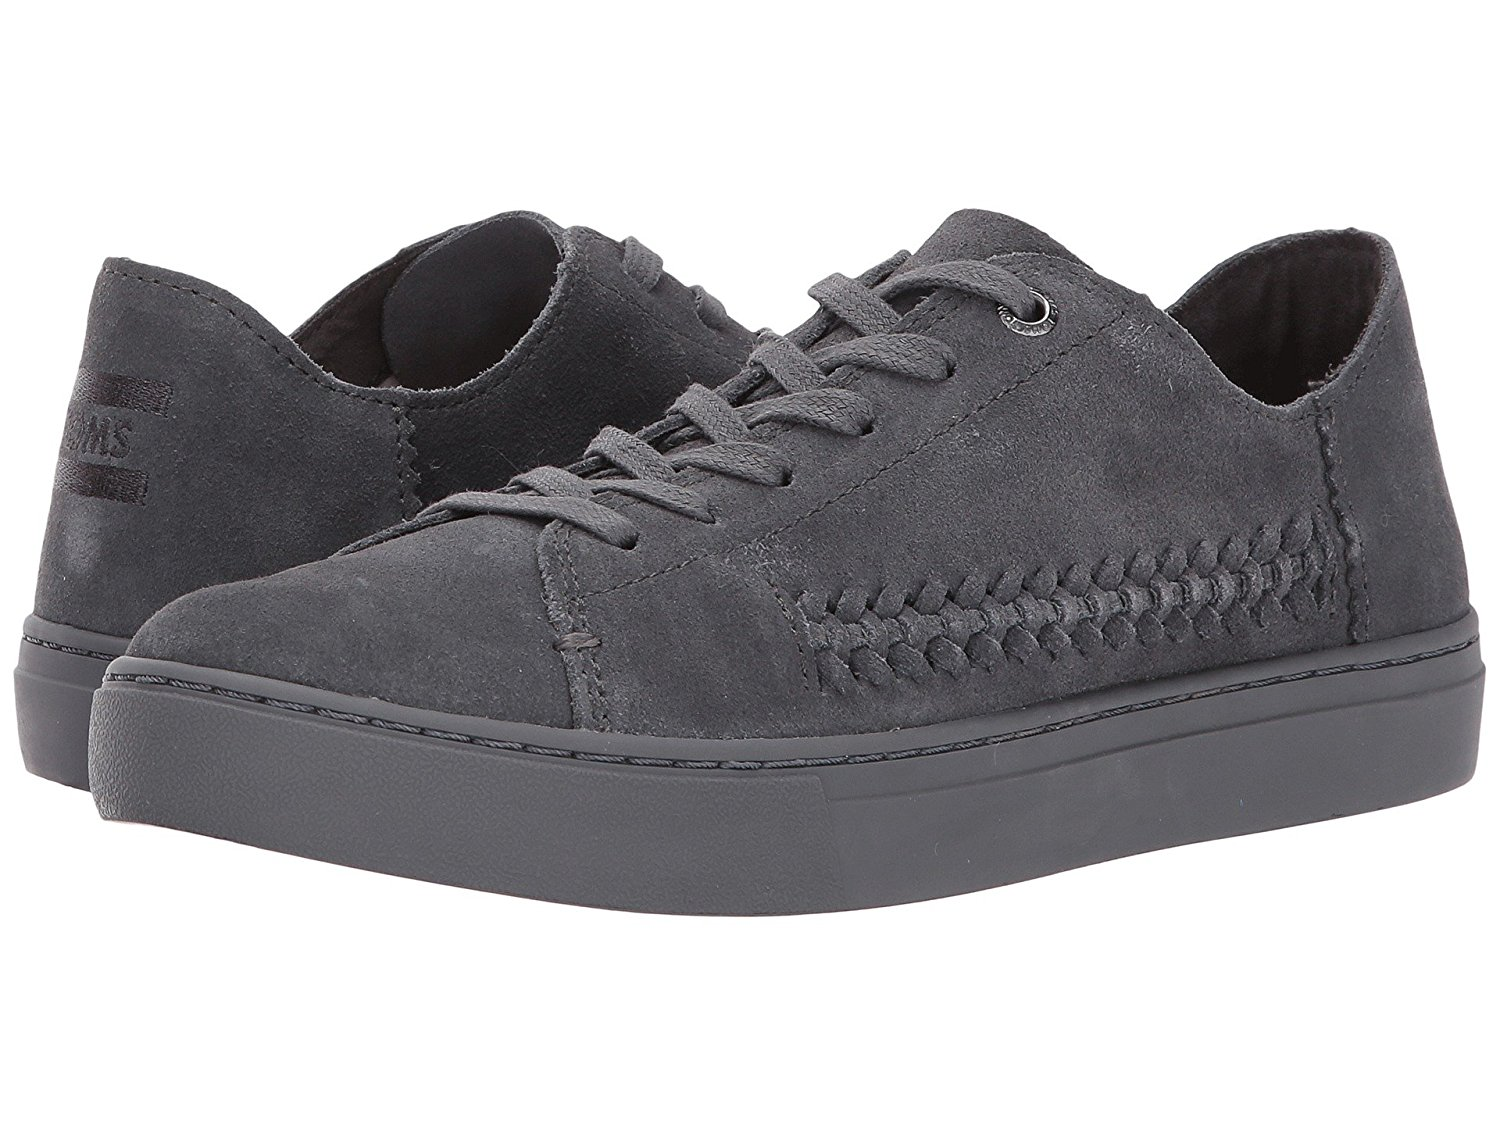 b0e4914eedd Get Quotations · TOMS Women s Lenox Sneaker Forged Iron Grey Monochrome  Deconstructed Suede Woven Panel Oxford